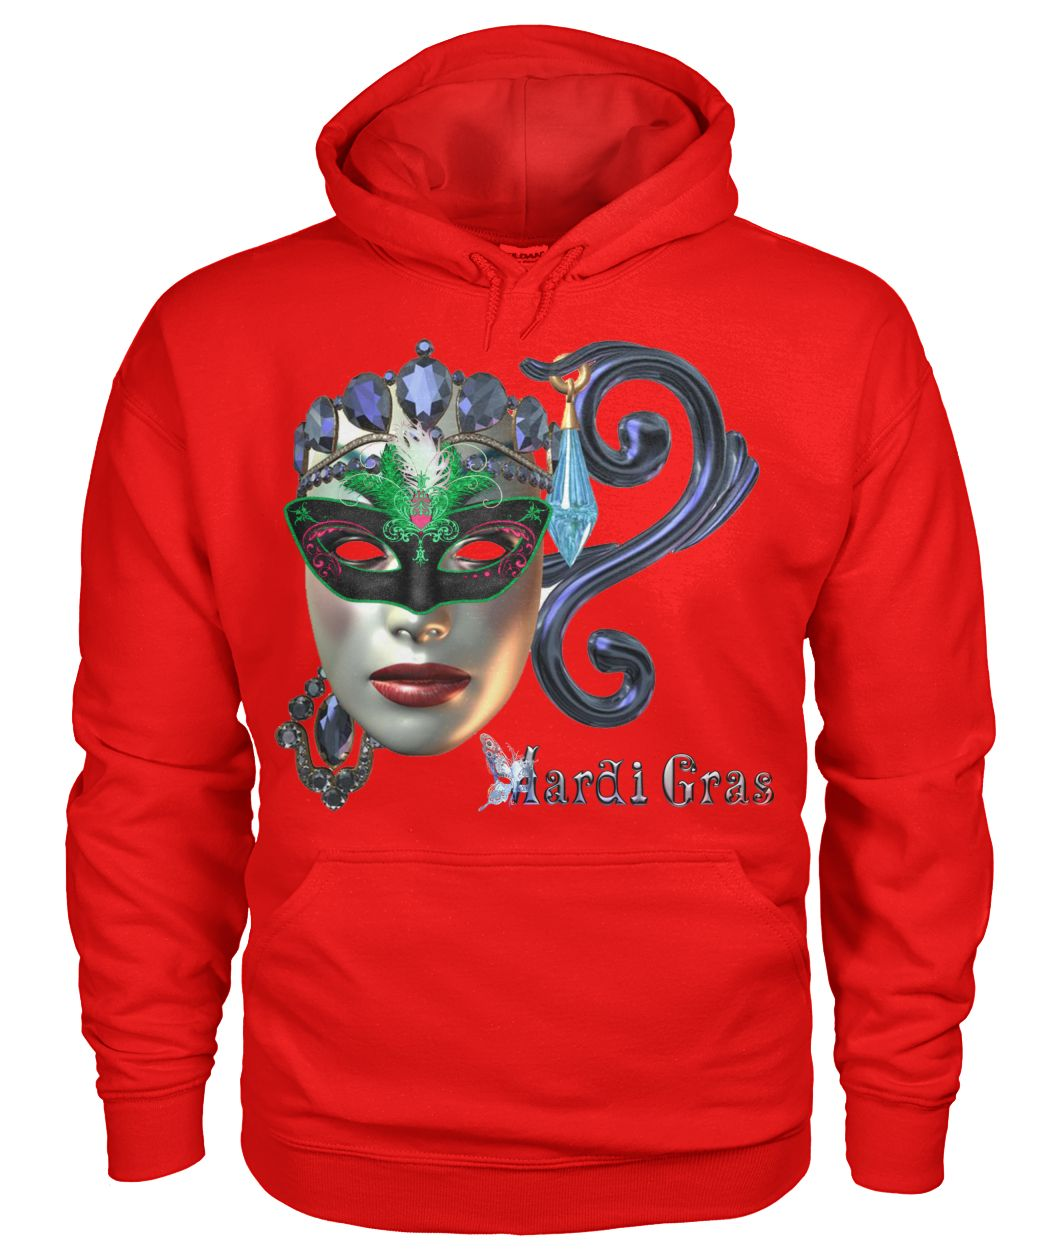 Shirt design buy - We Have Creativity For T Shirt Design You